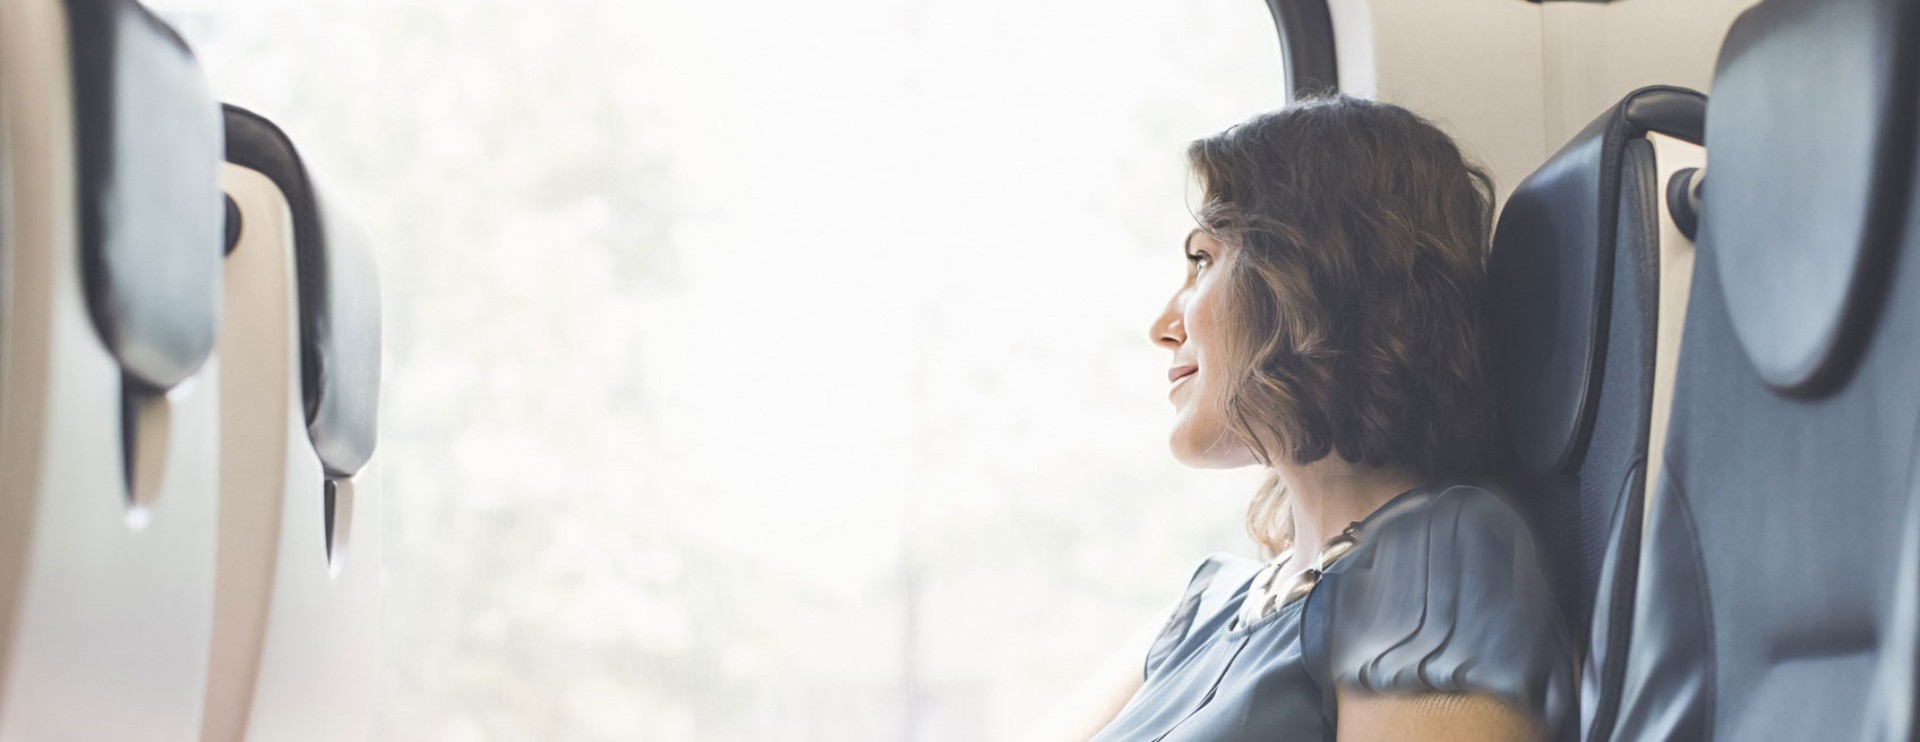 Woman sitting in a train lookig out the window.